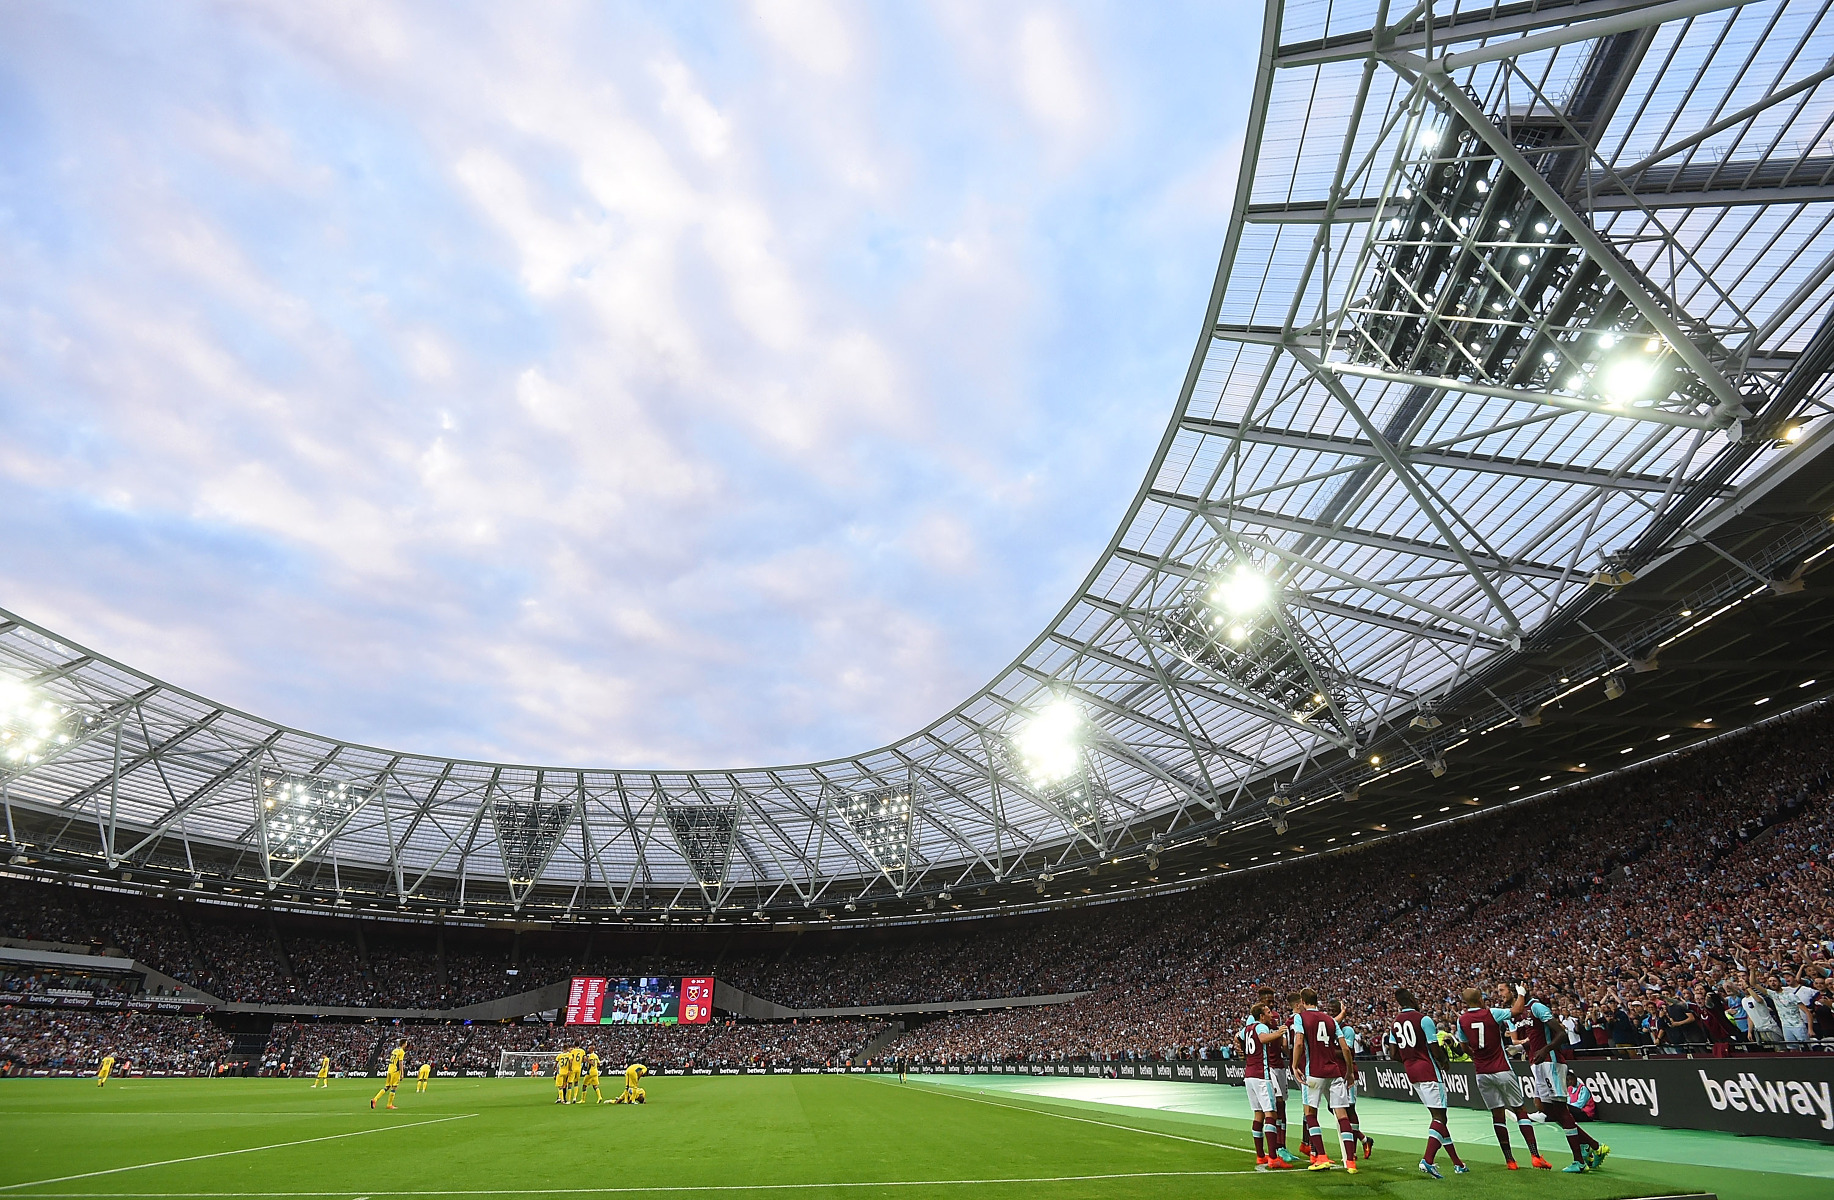 Official Licensed Football Entertainment Wall Stickers West Ham United Fc London Stadium Full Wall Mural Inside Stadium Players Celebrating The Beautiful Game